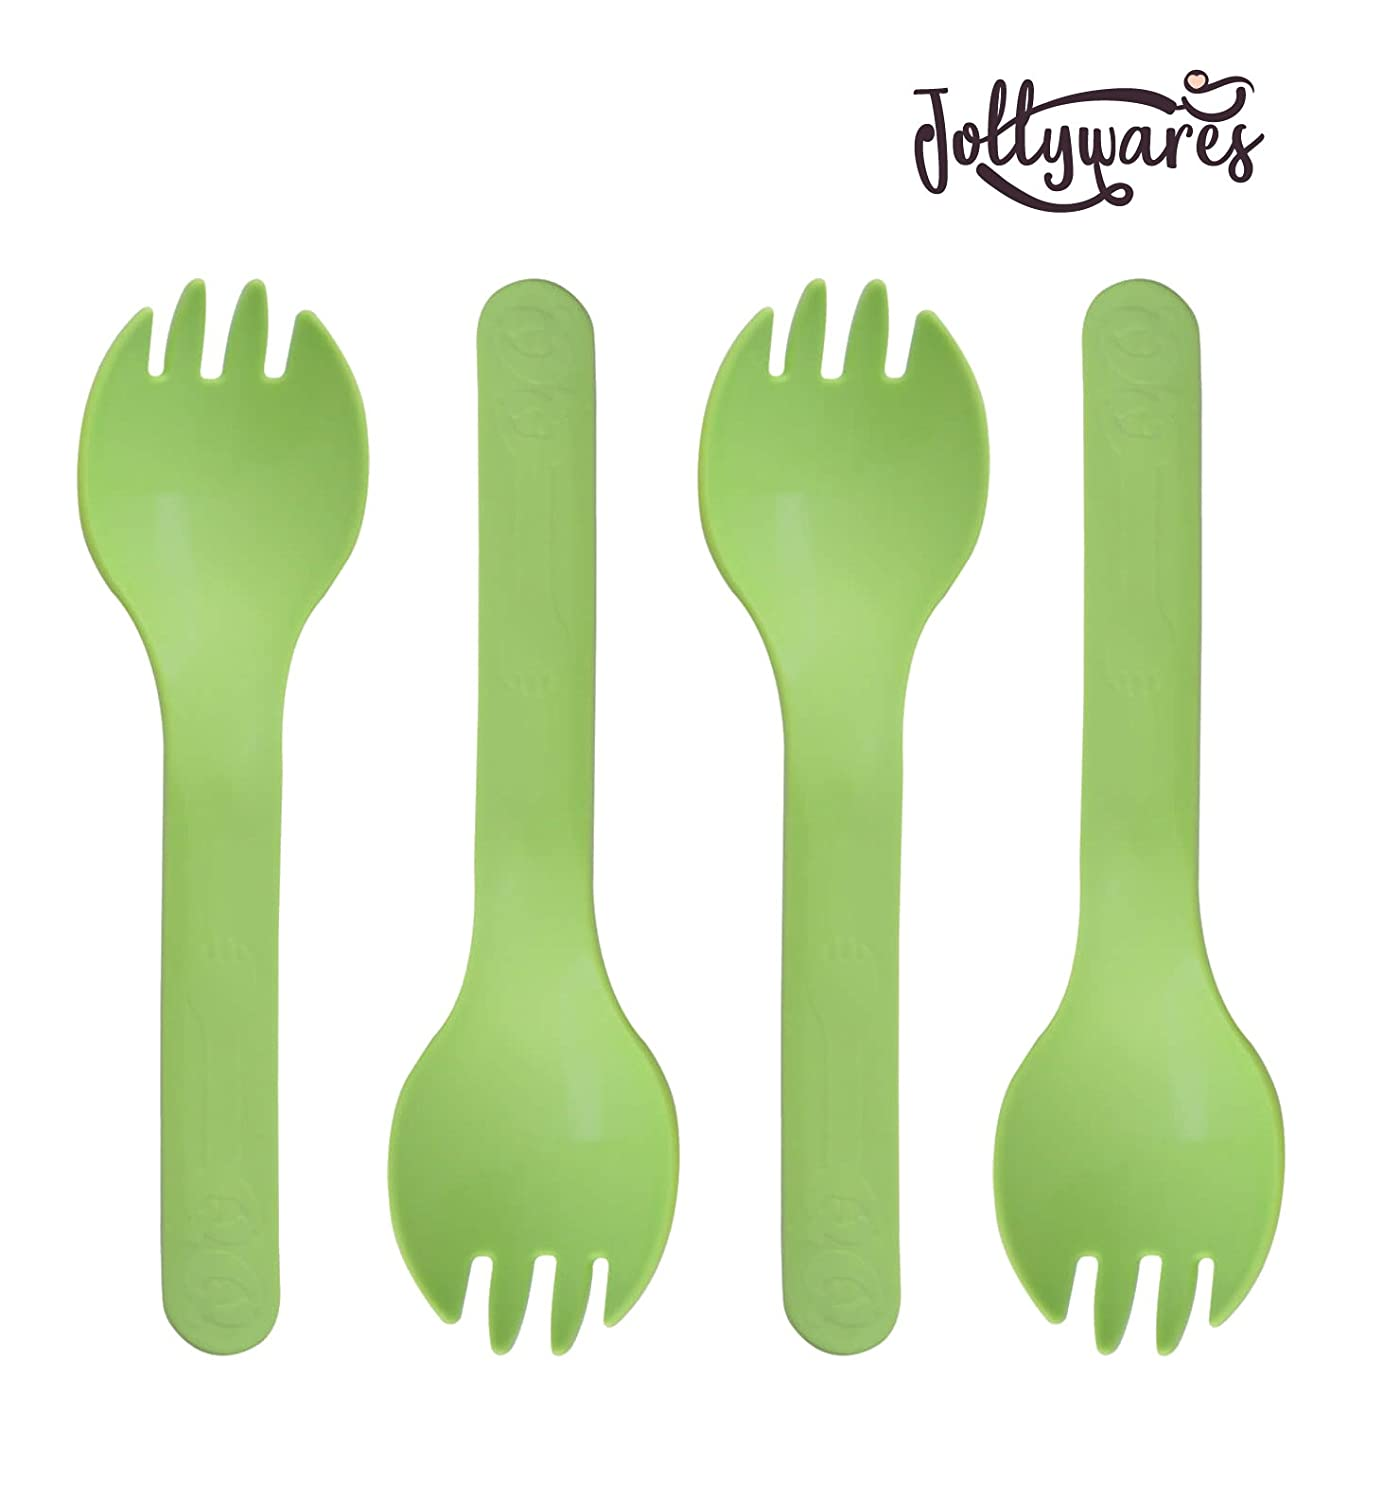 """Jollywares Colorful 5.3/"""" Premium Quality Disposable Plastic Spork 1 Pack of 50 pcs Mixed Colors"""